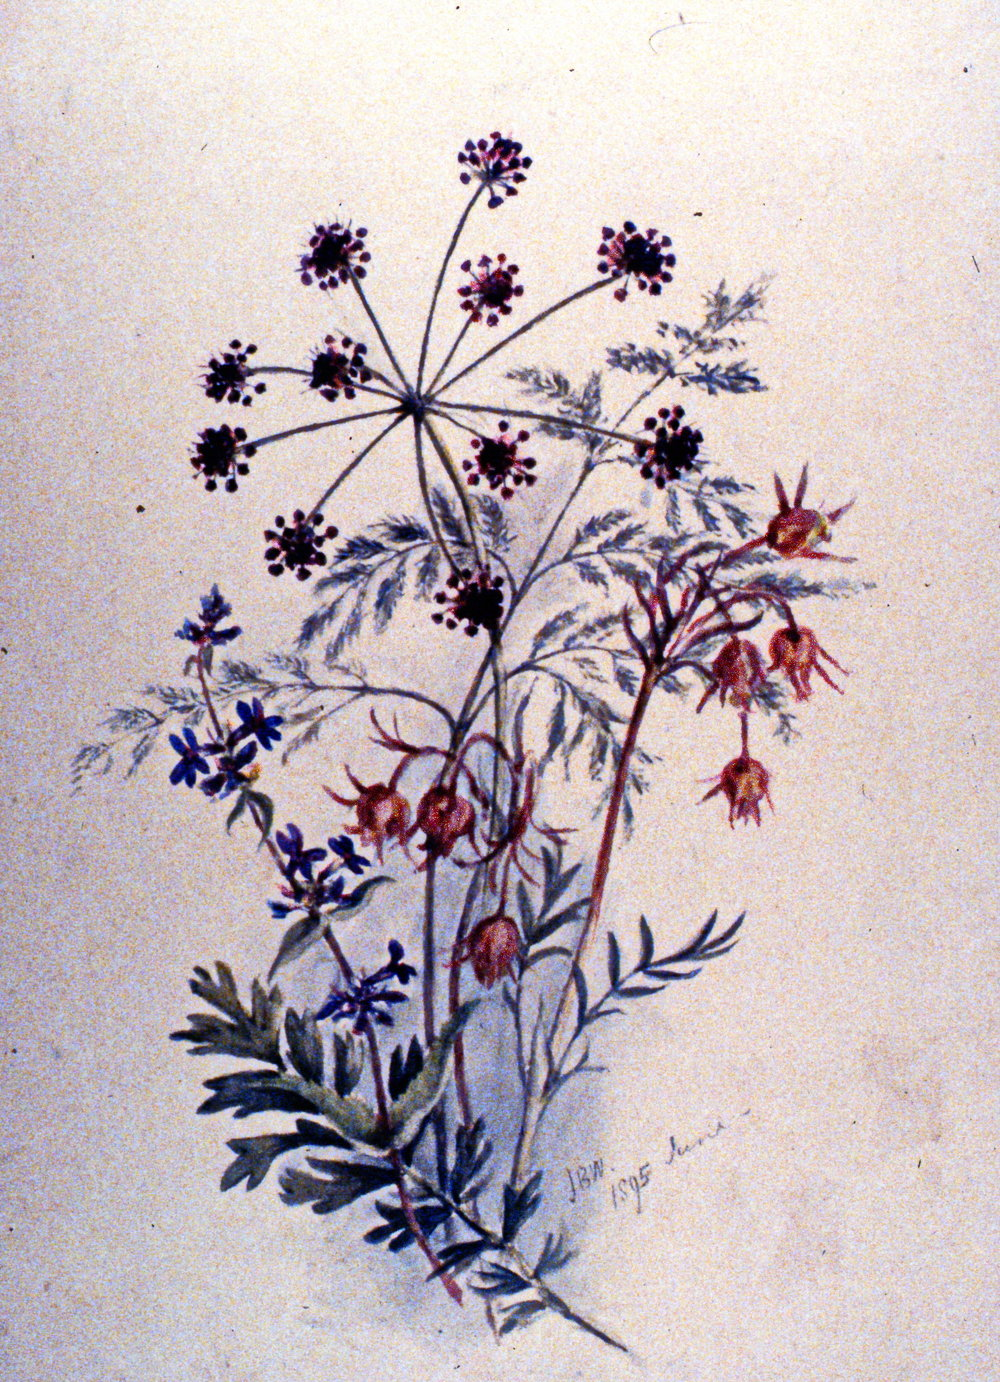 Untitled (Leptontaenia, Multifia), 1895, Julia Bullock Webster, watercolour on paper, 35.5 x 25.2 cm, 1983.02.23. Gift of Mrs. Barbara Steel.